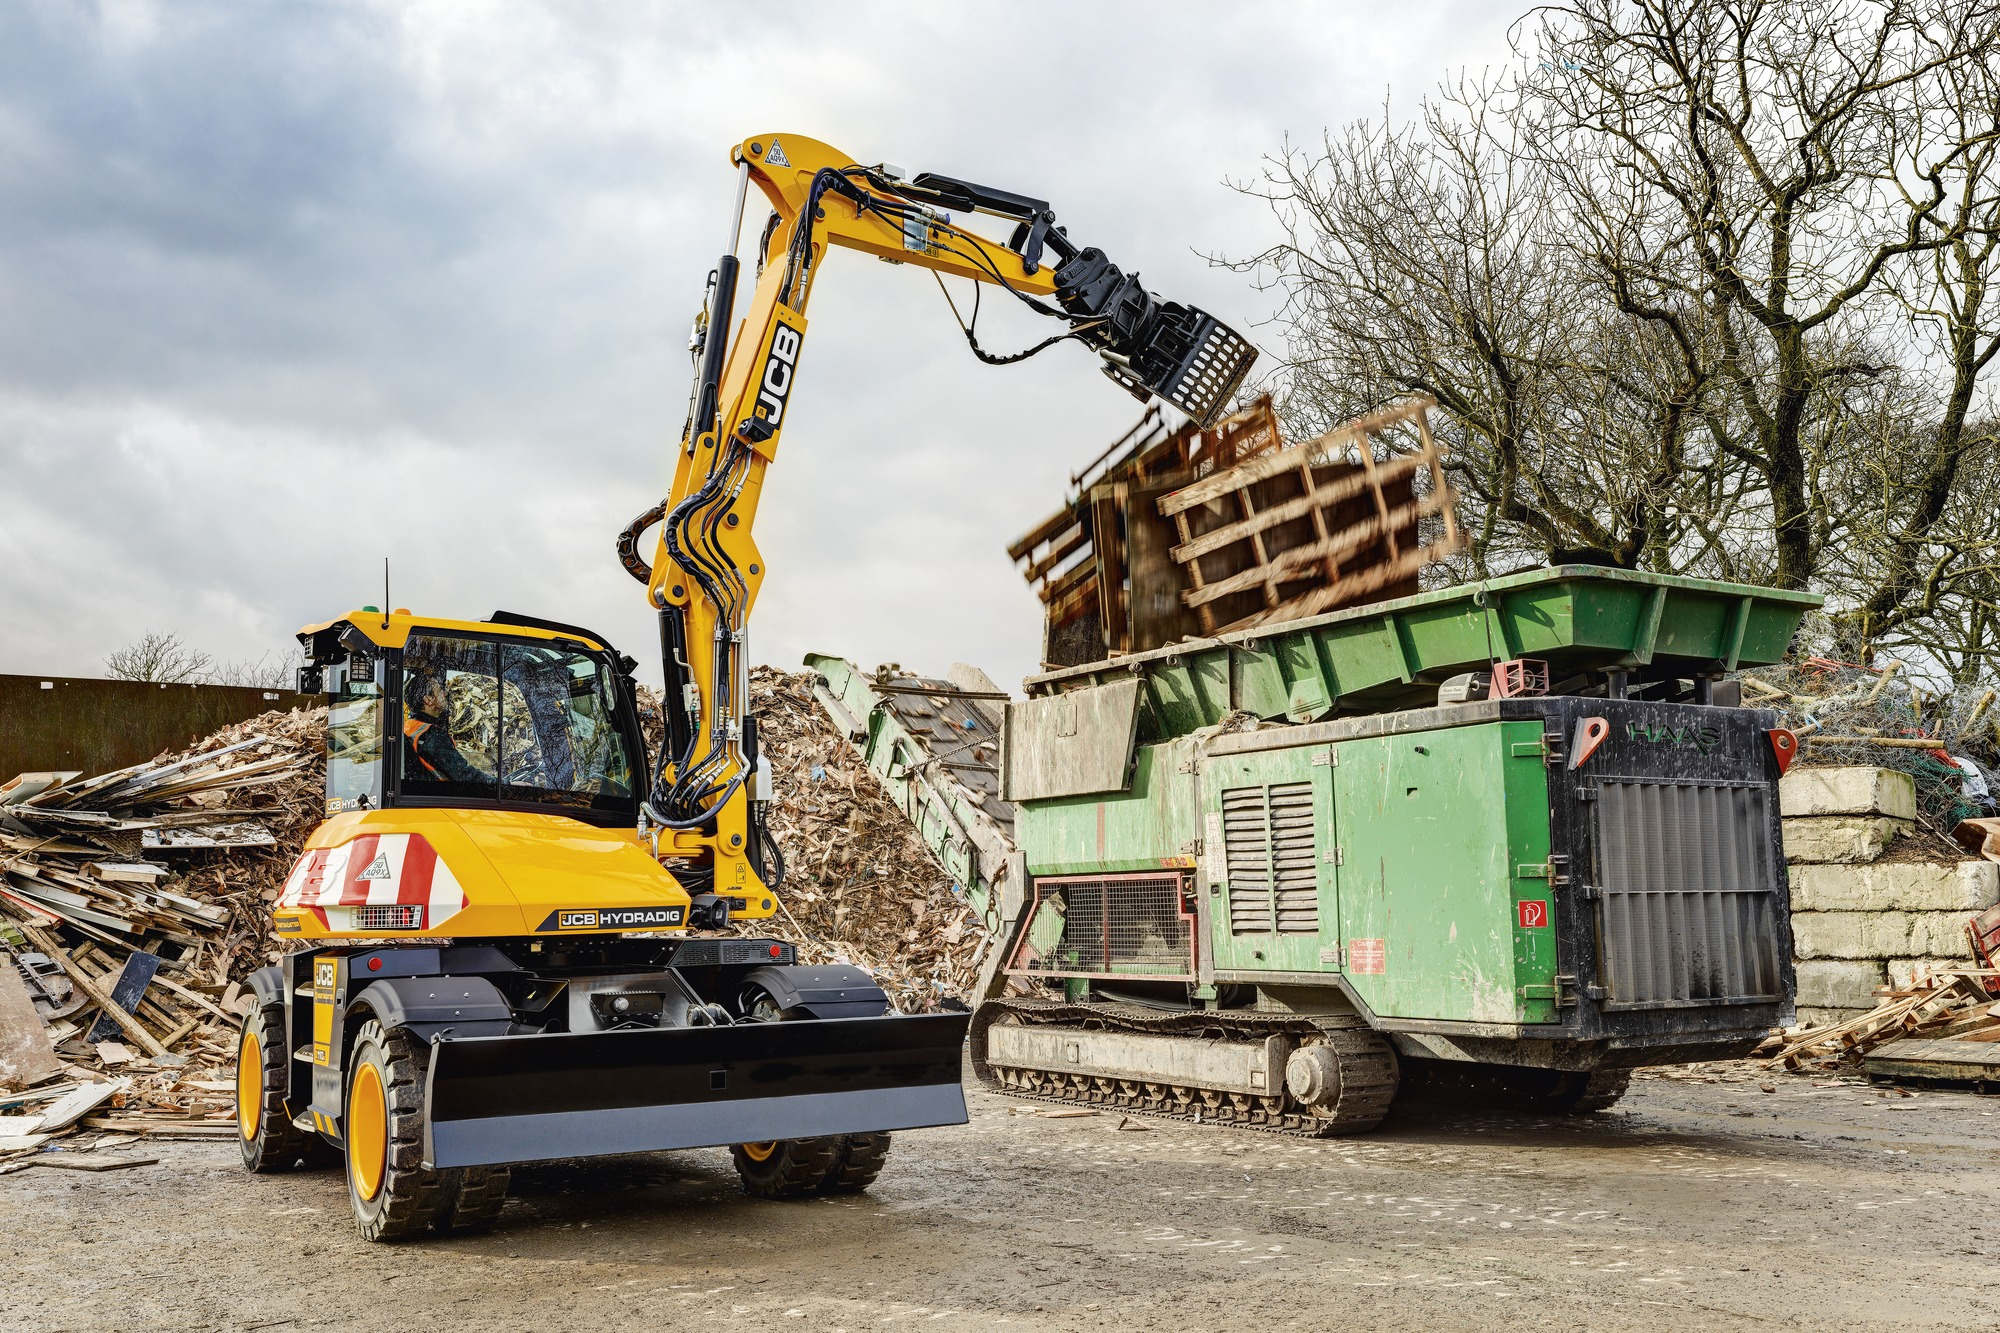 Hydradig, wheeled excavator, wastemaster, application, waste and recycling